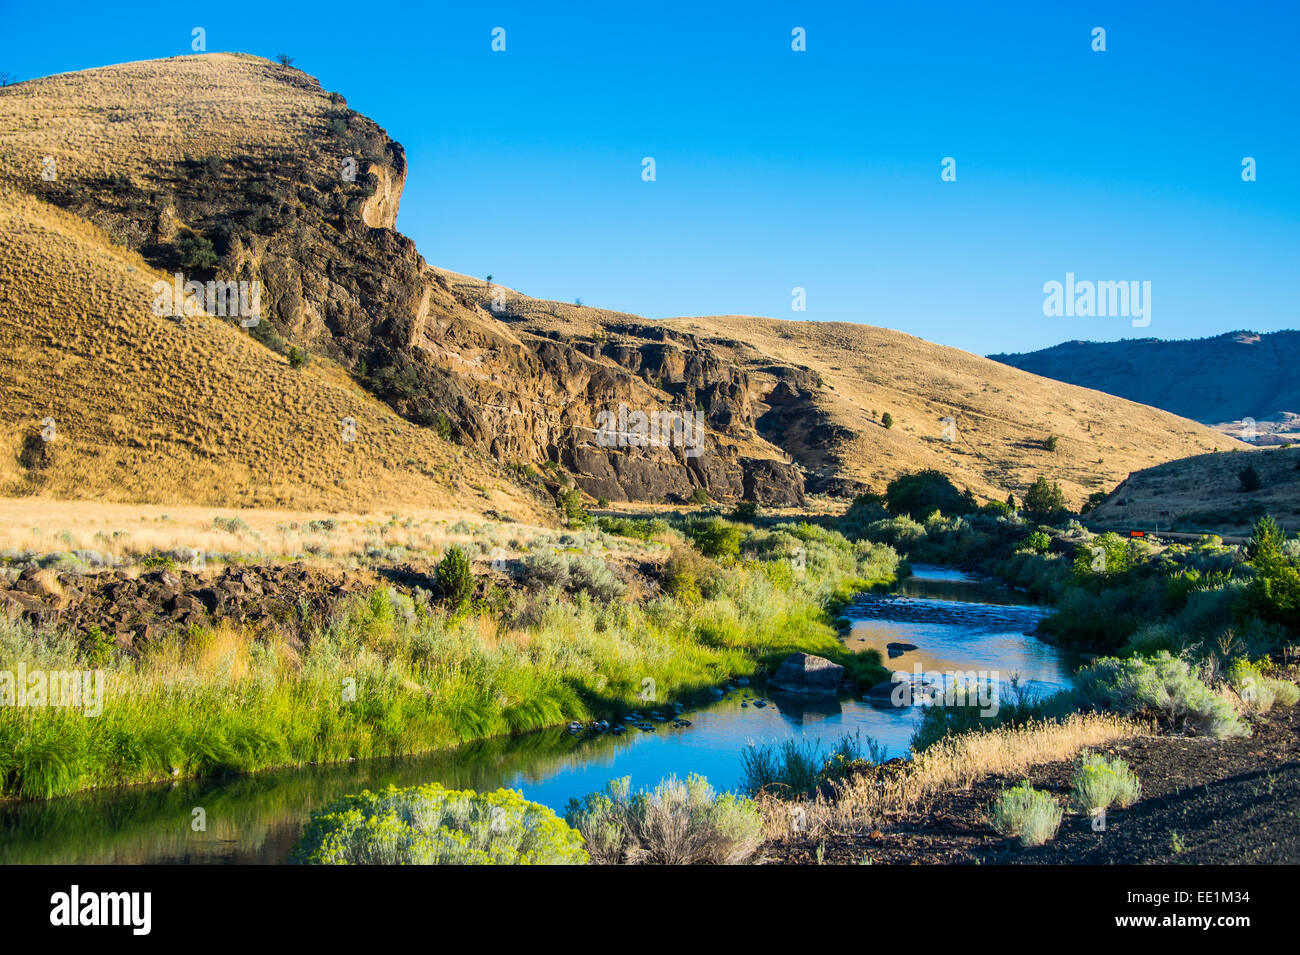 Mighty John Day River flowing through the Sheep Rock unit in the John Day Fossil Beds National Monument, Oregon, - Stock Image